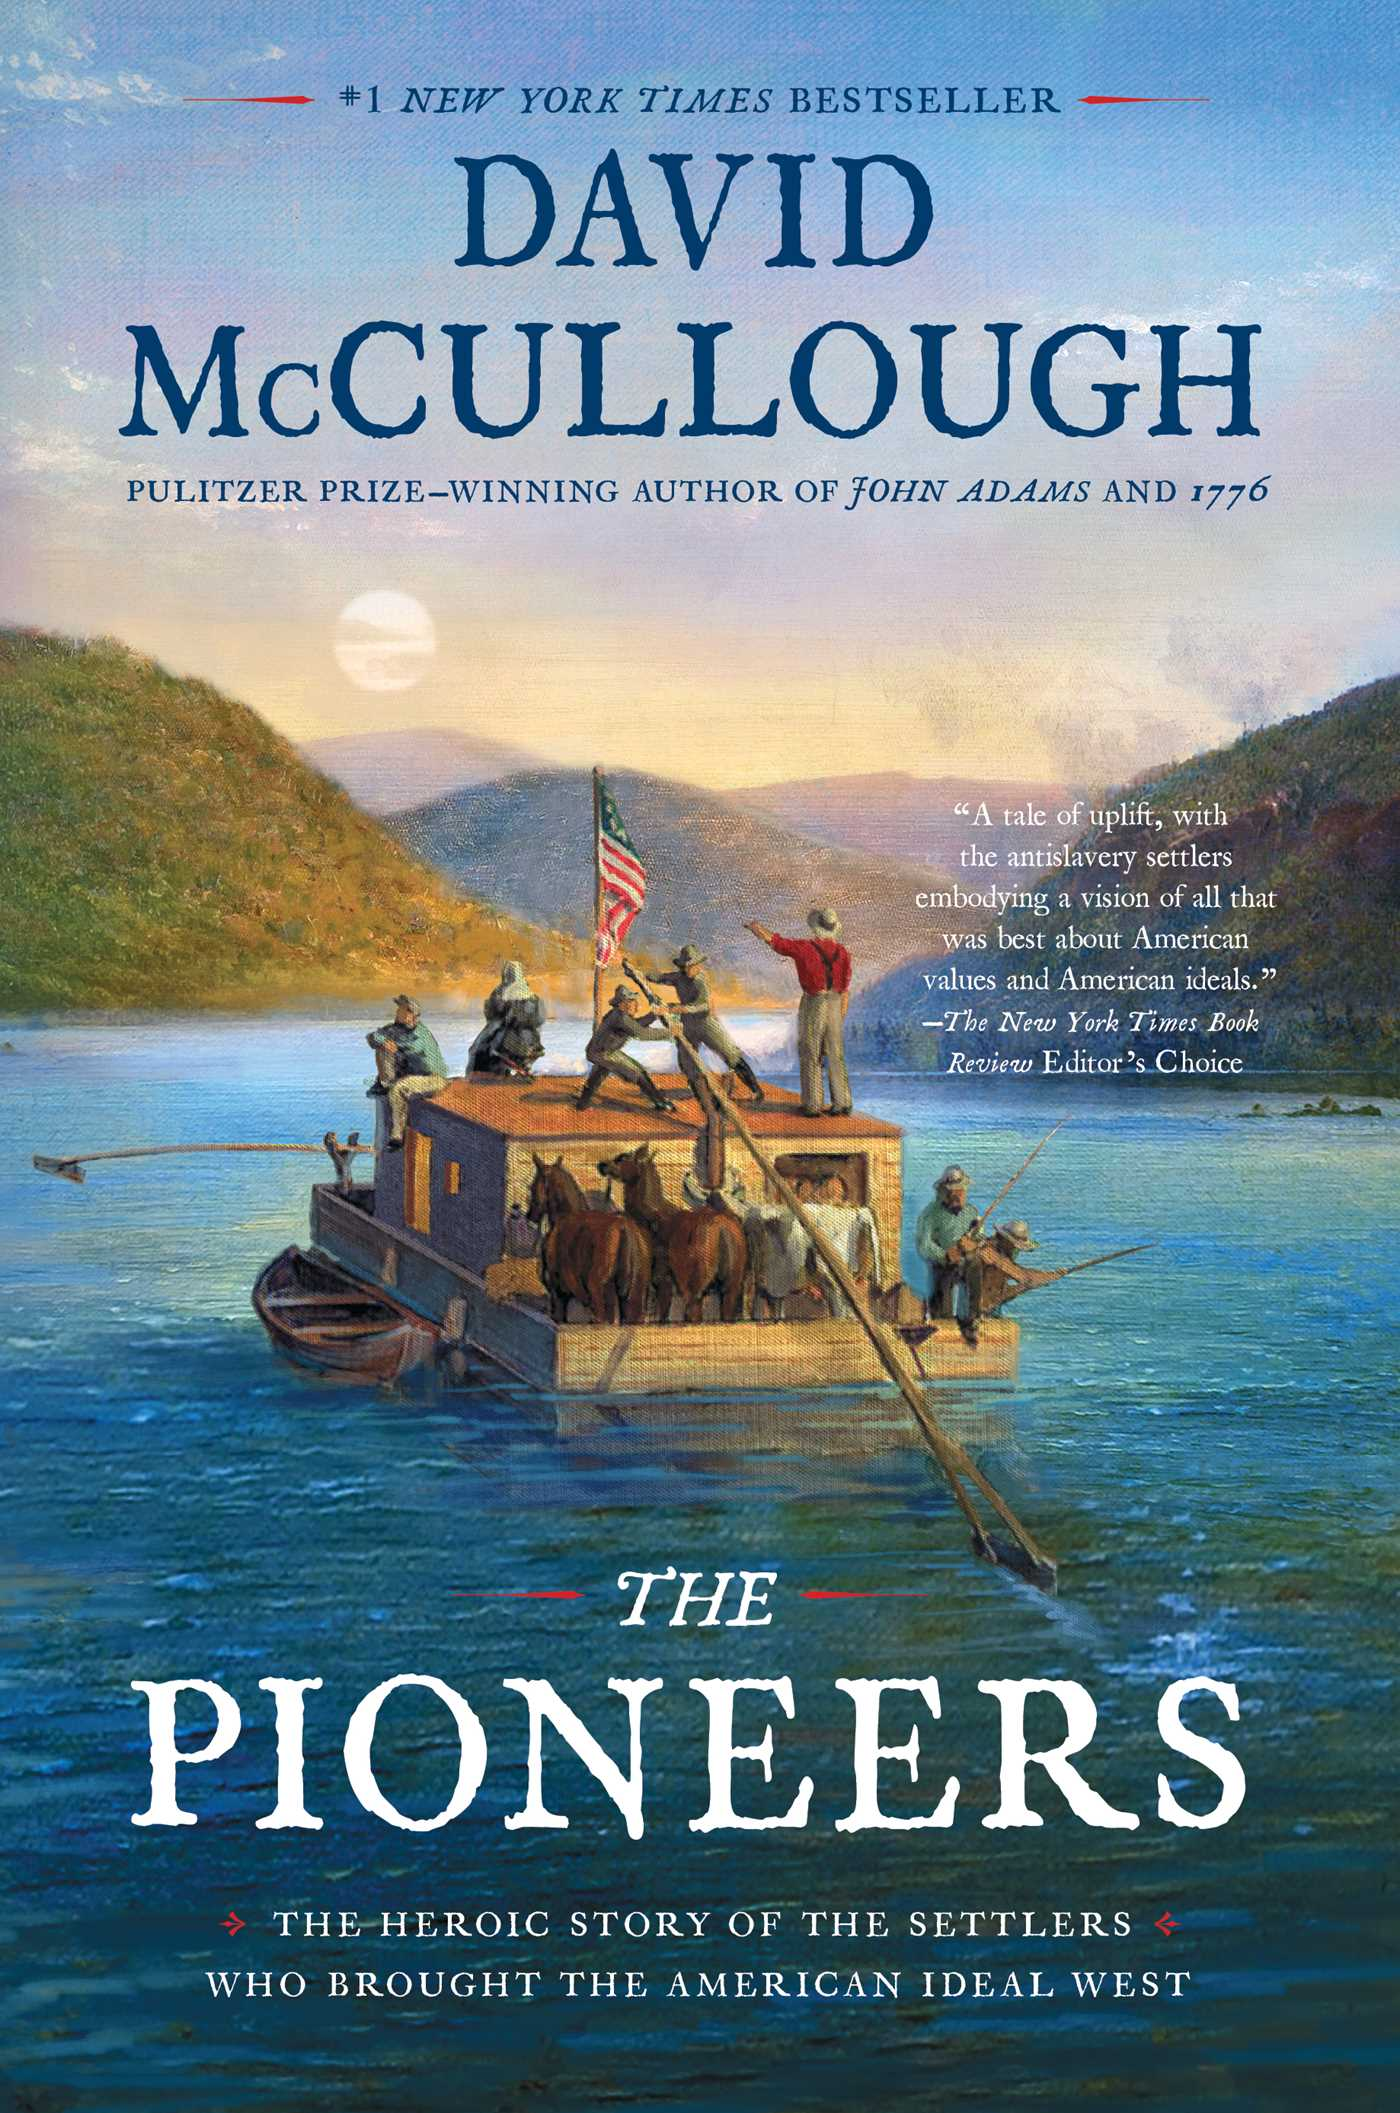 The Pioneers The Heroic Story of the Settlers Who Brought the American Ideal WestbyDavid McCullough